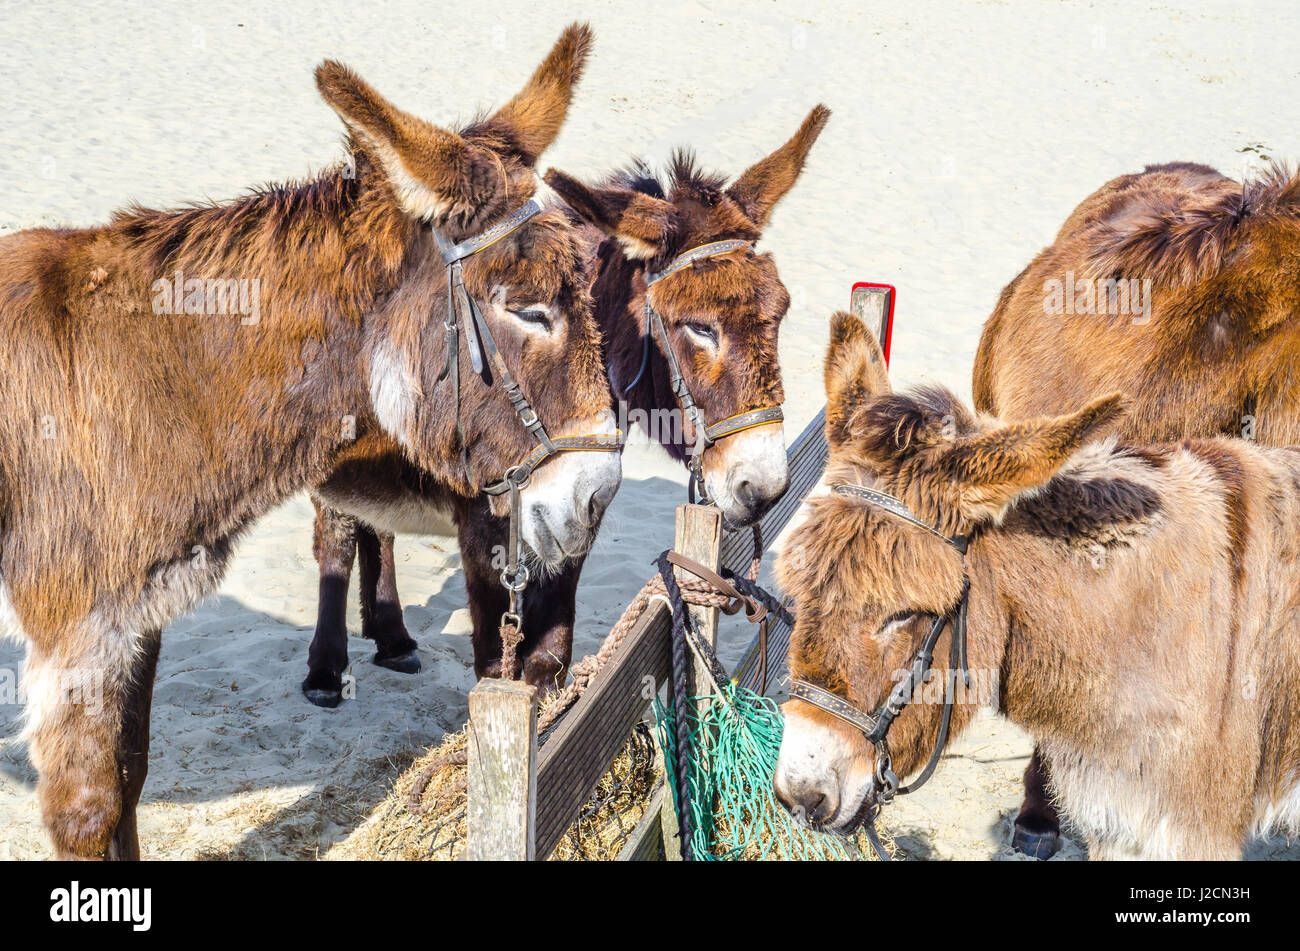 Four gorgeous domesticated es, es in a harness strapped to a ...